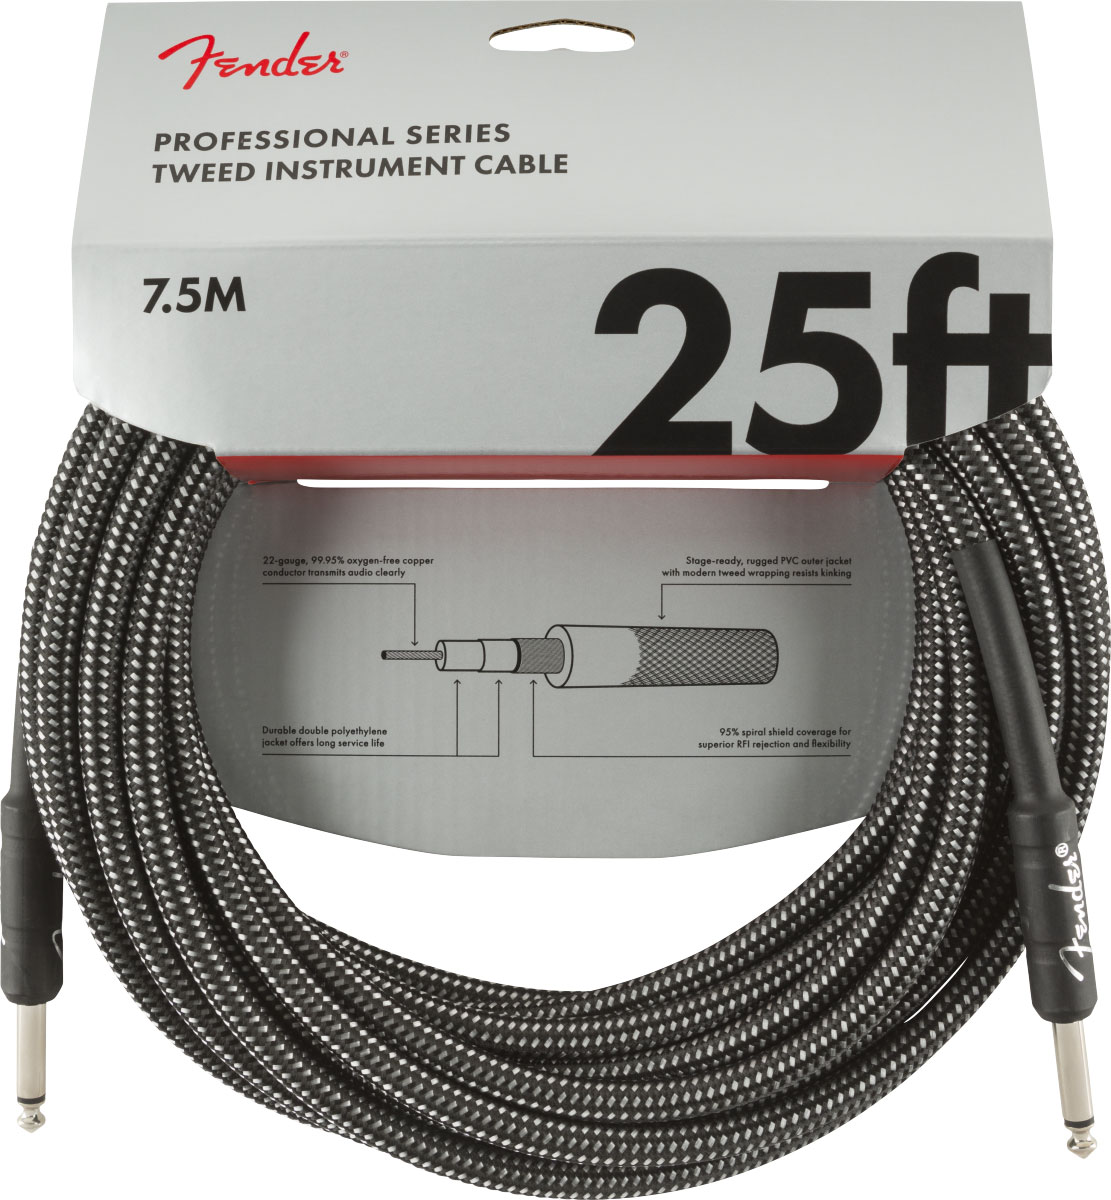 PROFESSIONAL SERIES INSTRUMENT CABLE 25' GRAY TWEED